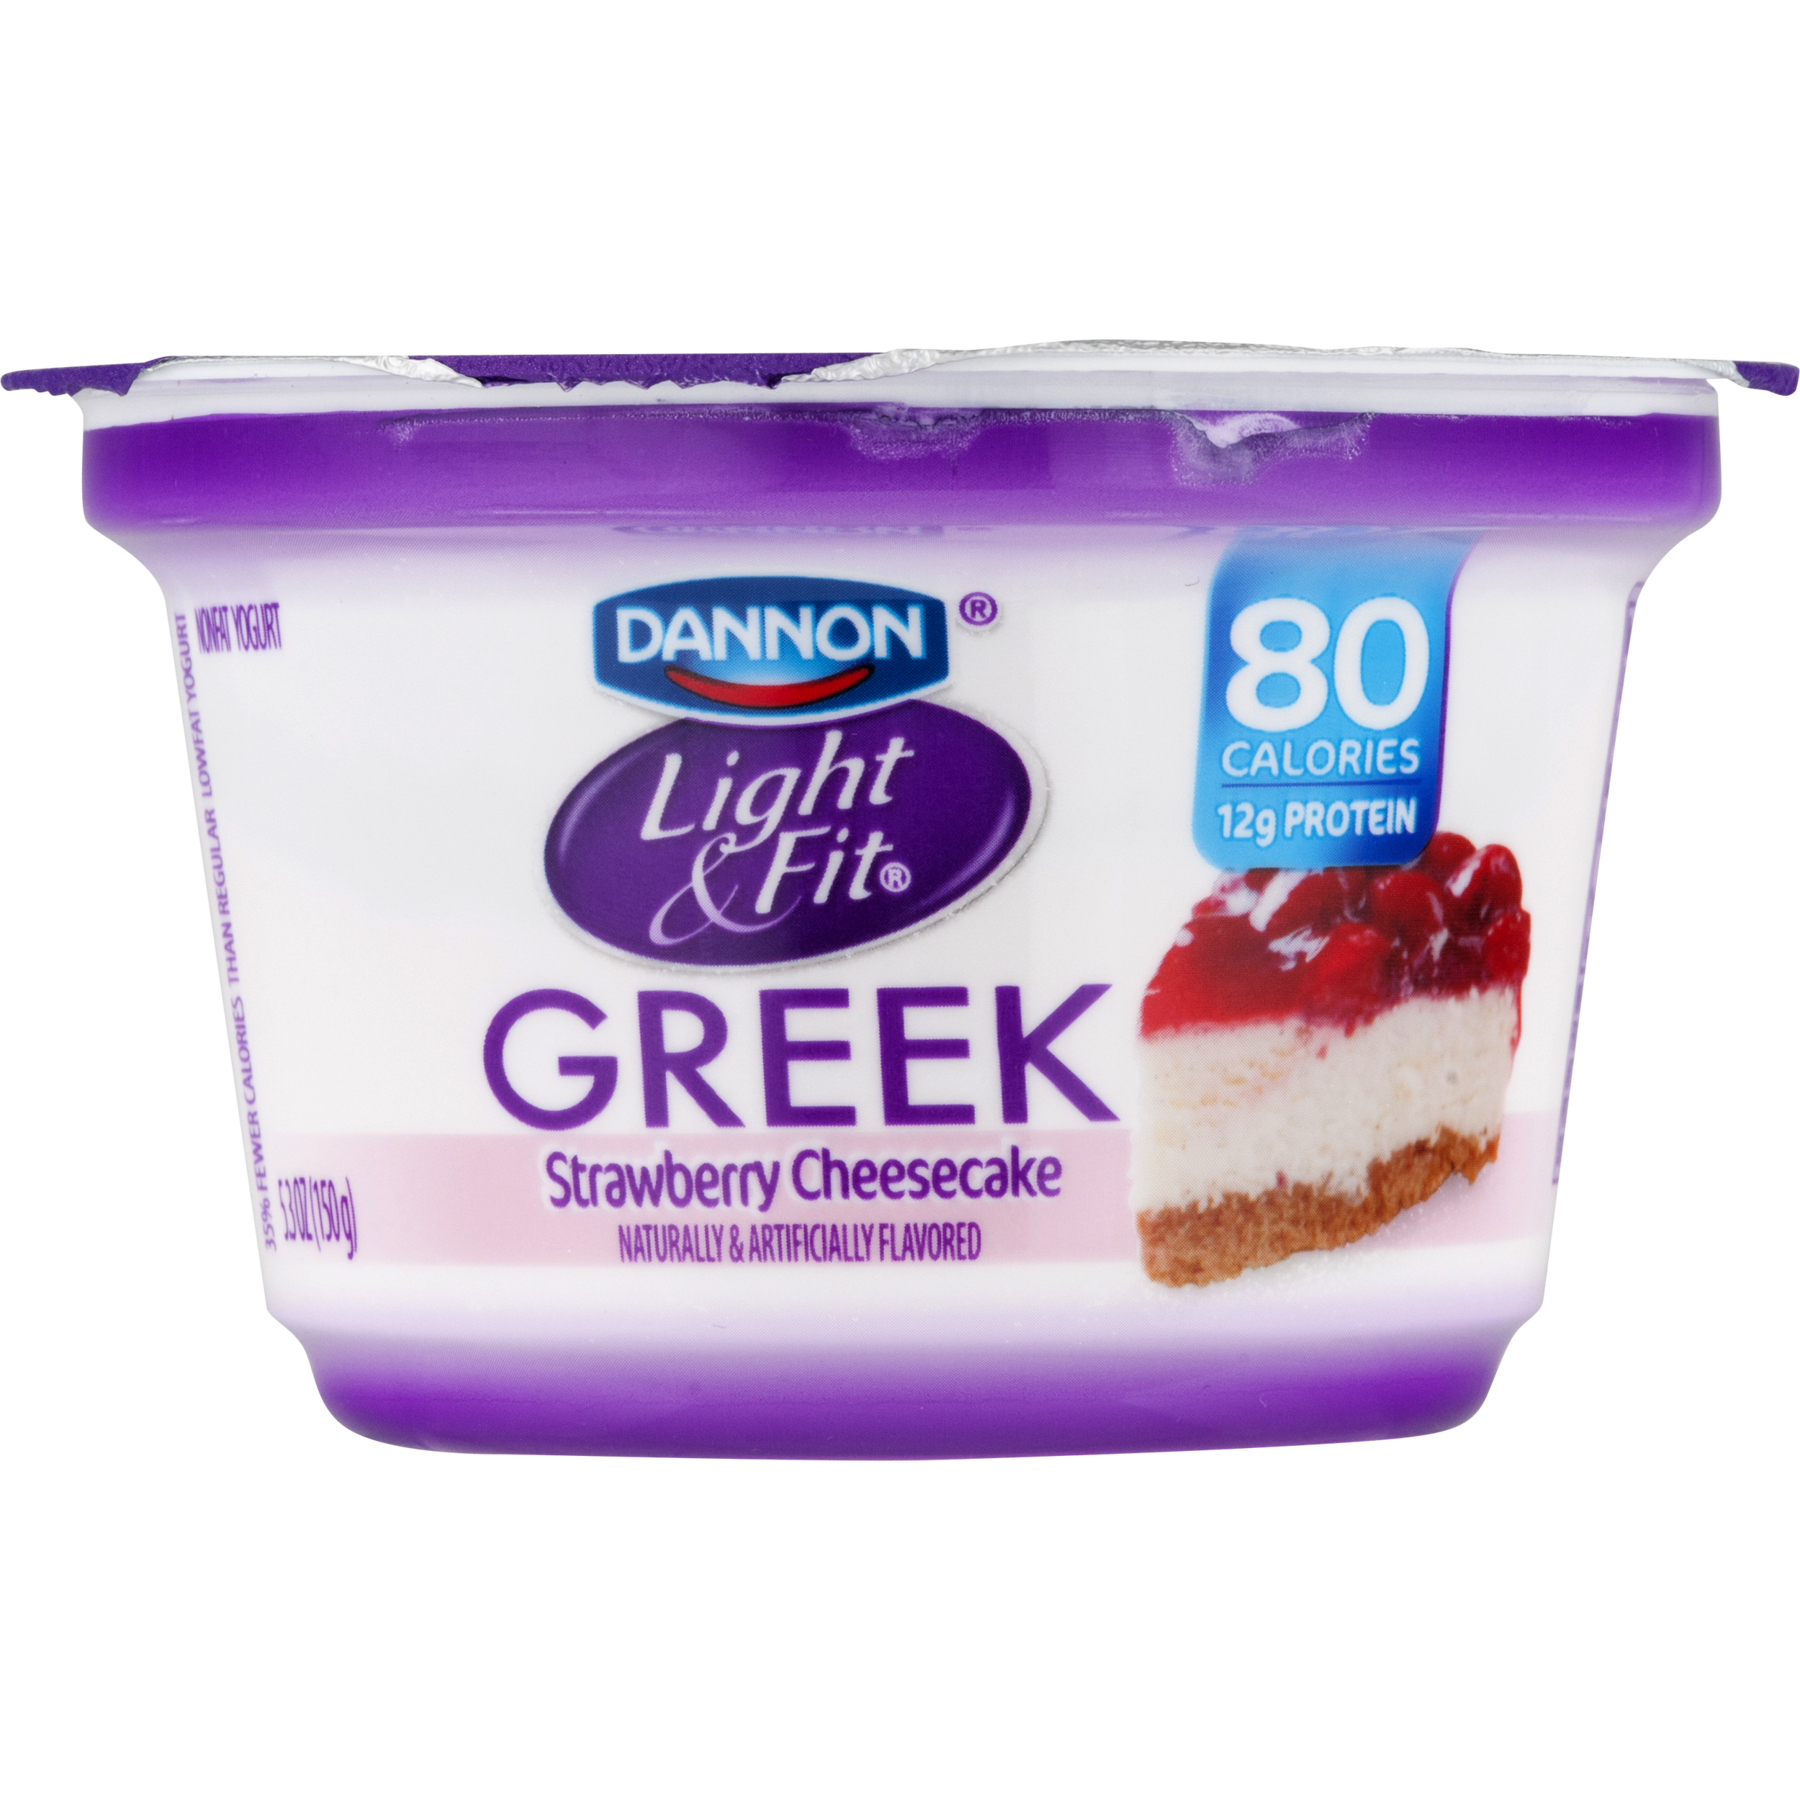 dannon light & fit greek strawberry cheesecake nonfat yogurt, 5.3 oz